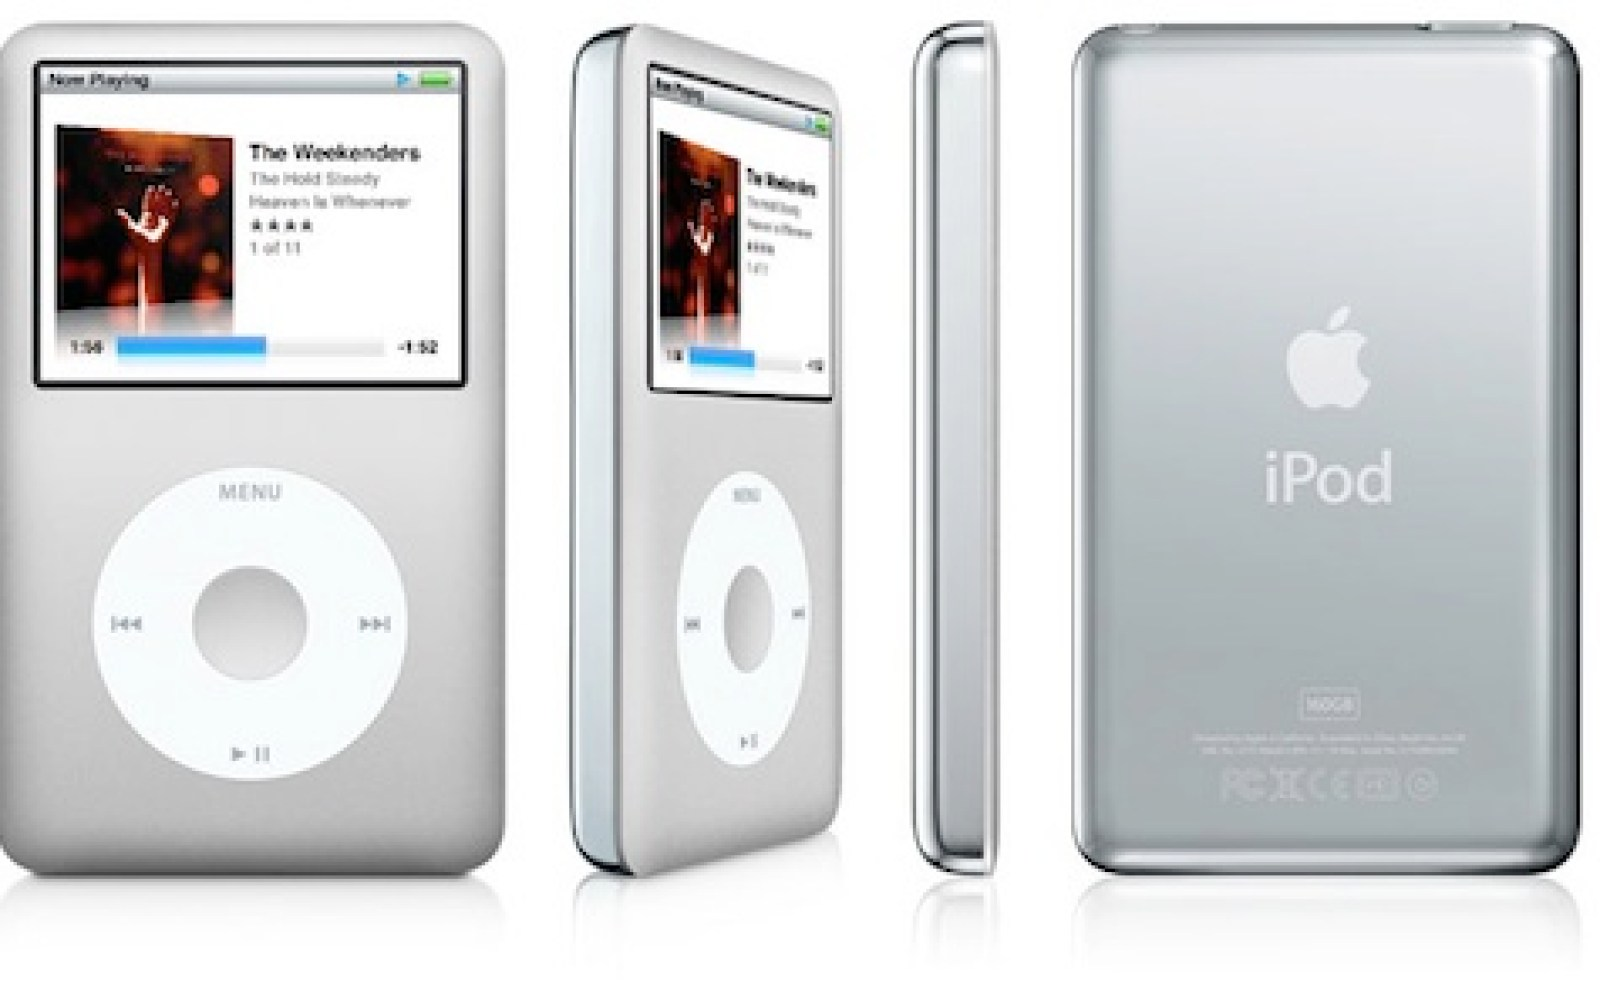 Tim Cook: iPod classic was discontinued due to unavailability of parts, engineering a new version wasn't worth it